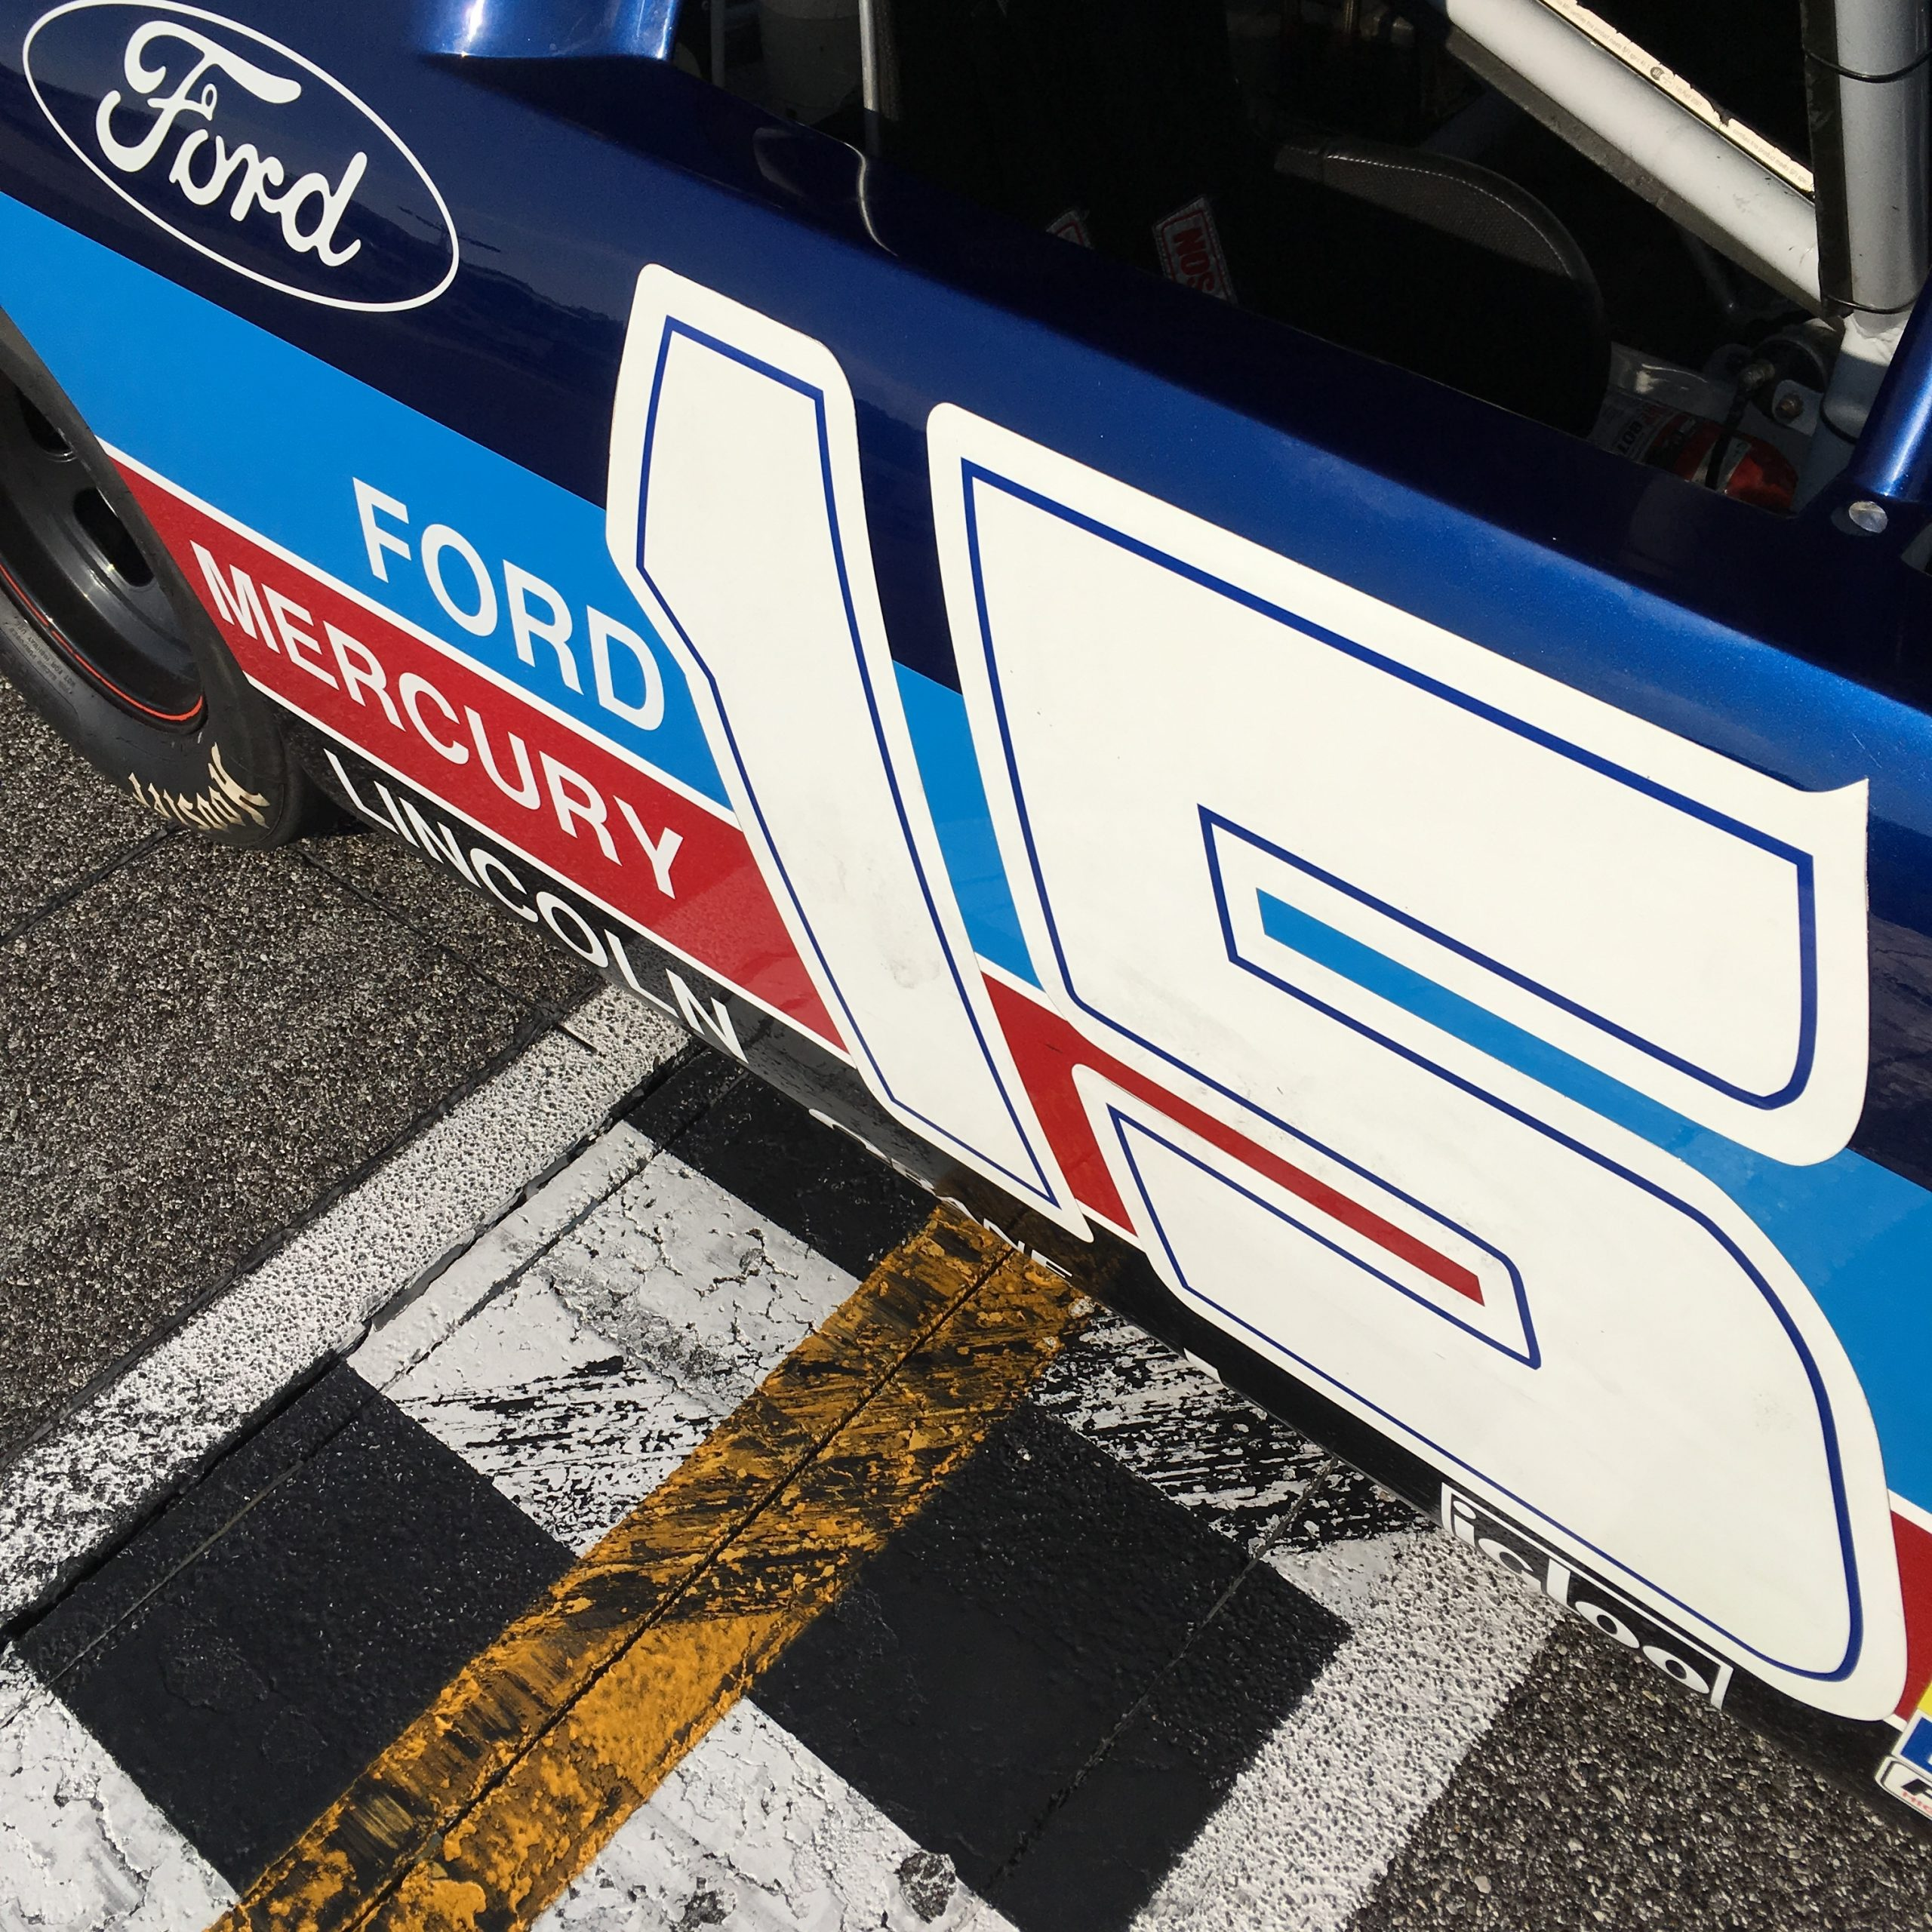 Ford 1993 Stock Car check line